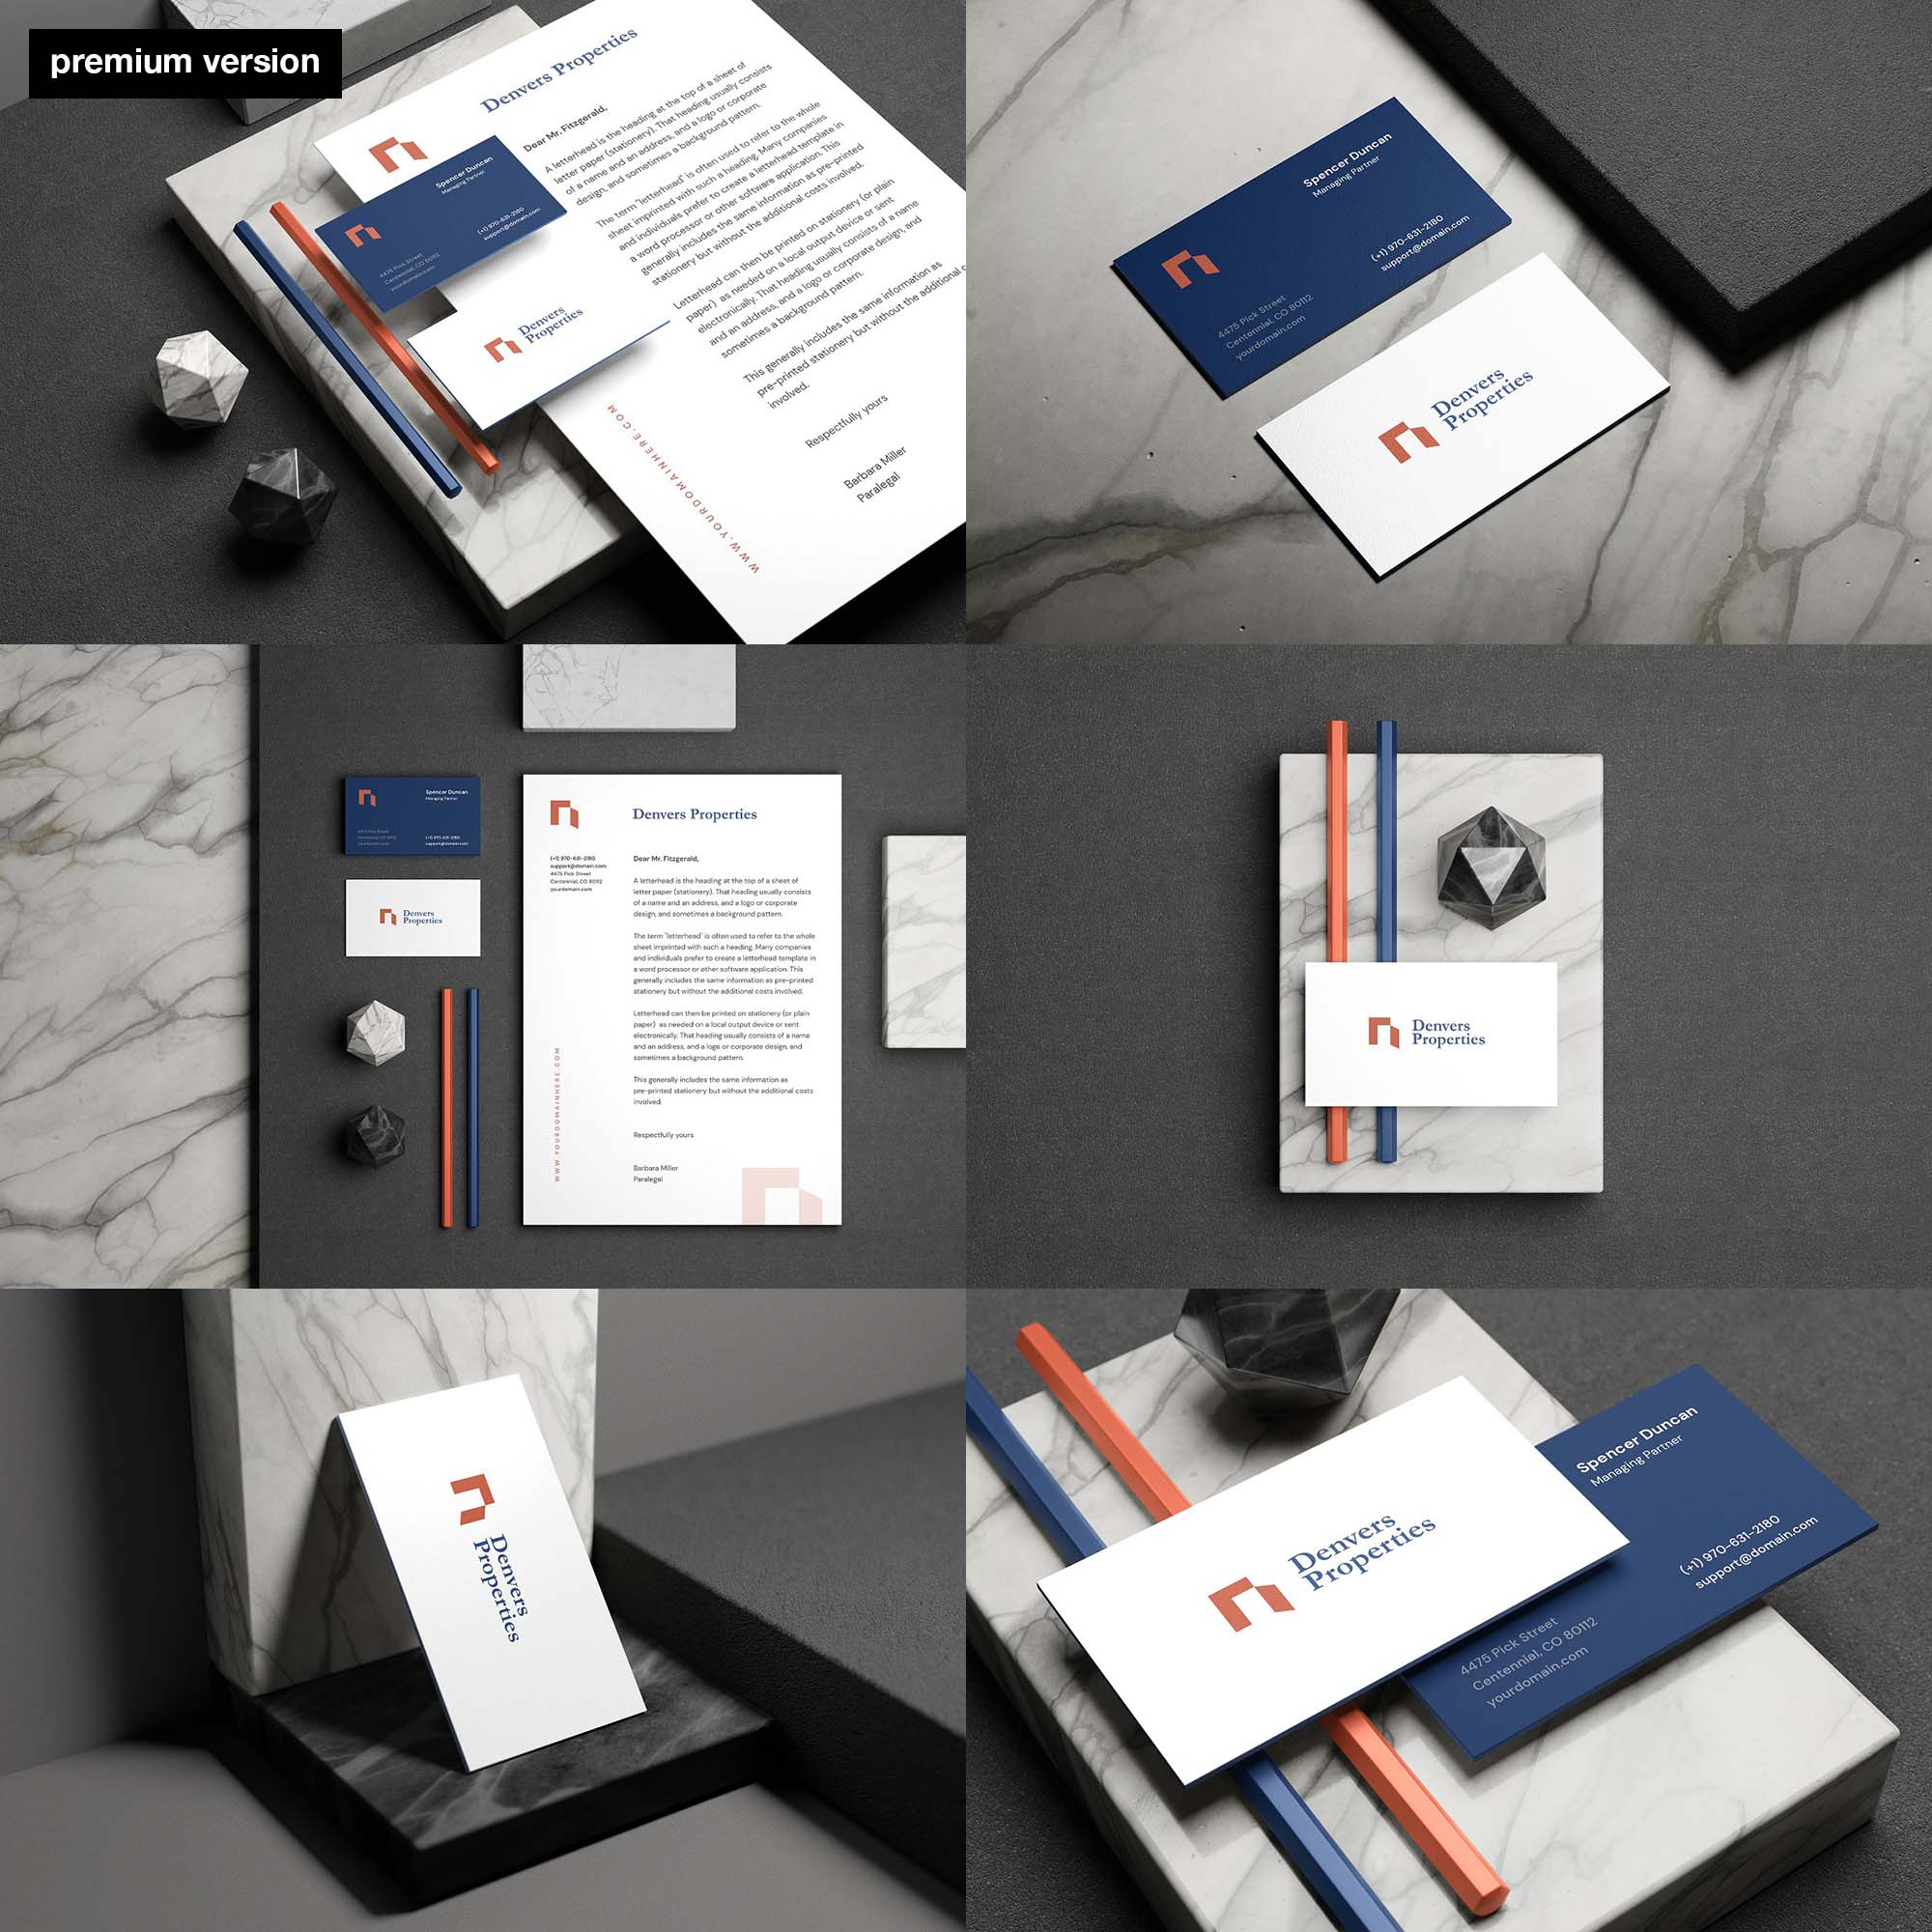 Minimal Stationery Mockup - Premium Version